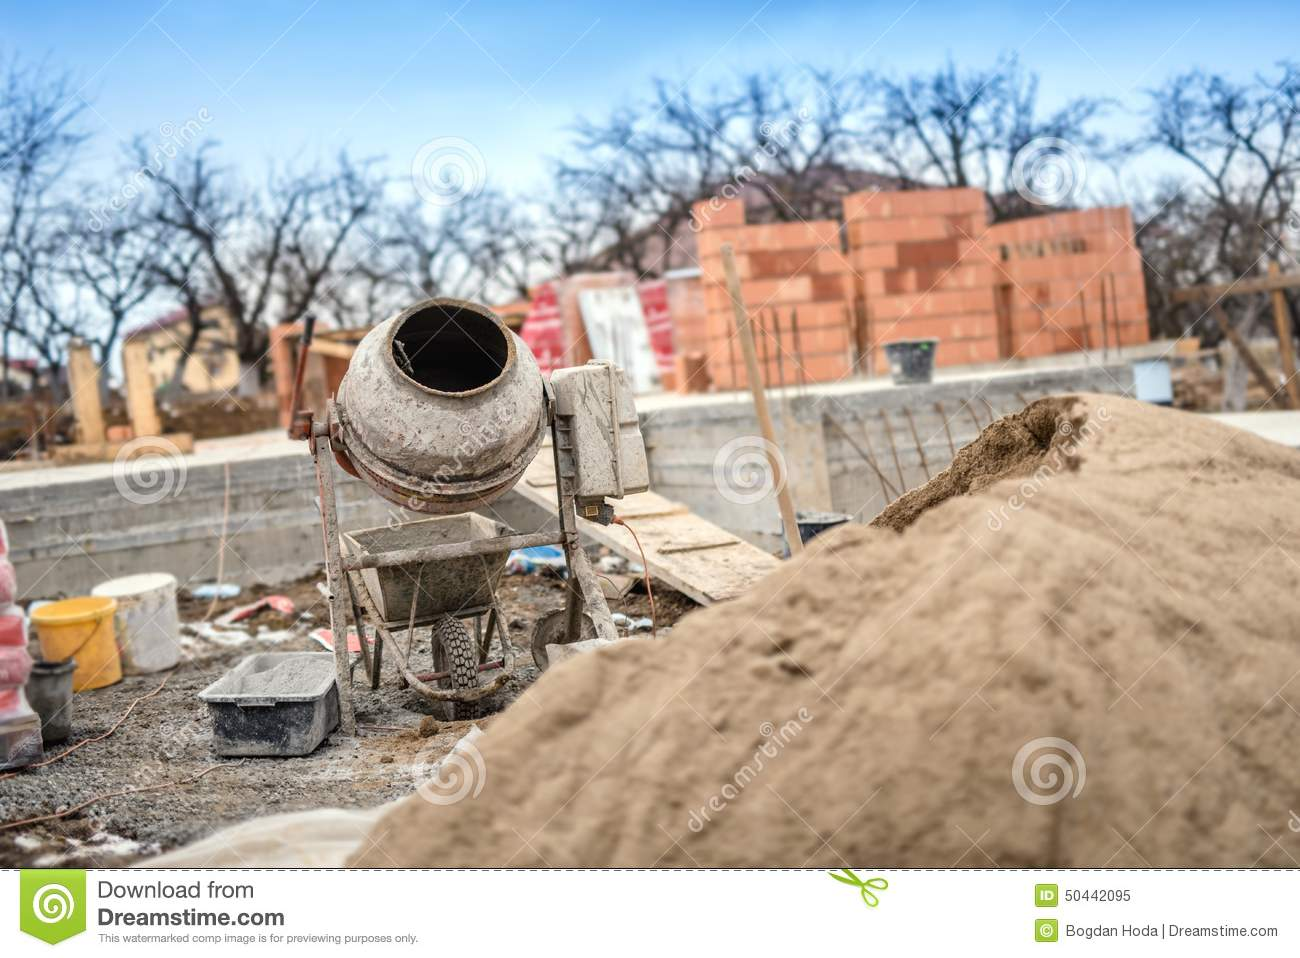 Cement Mixer Machinery Used On Construction Site For Preparing